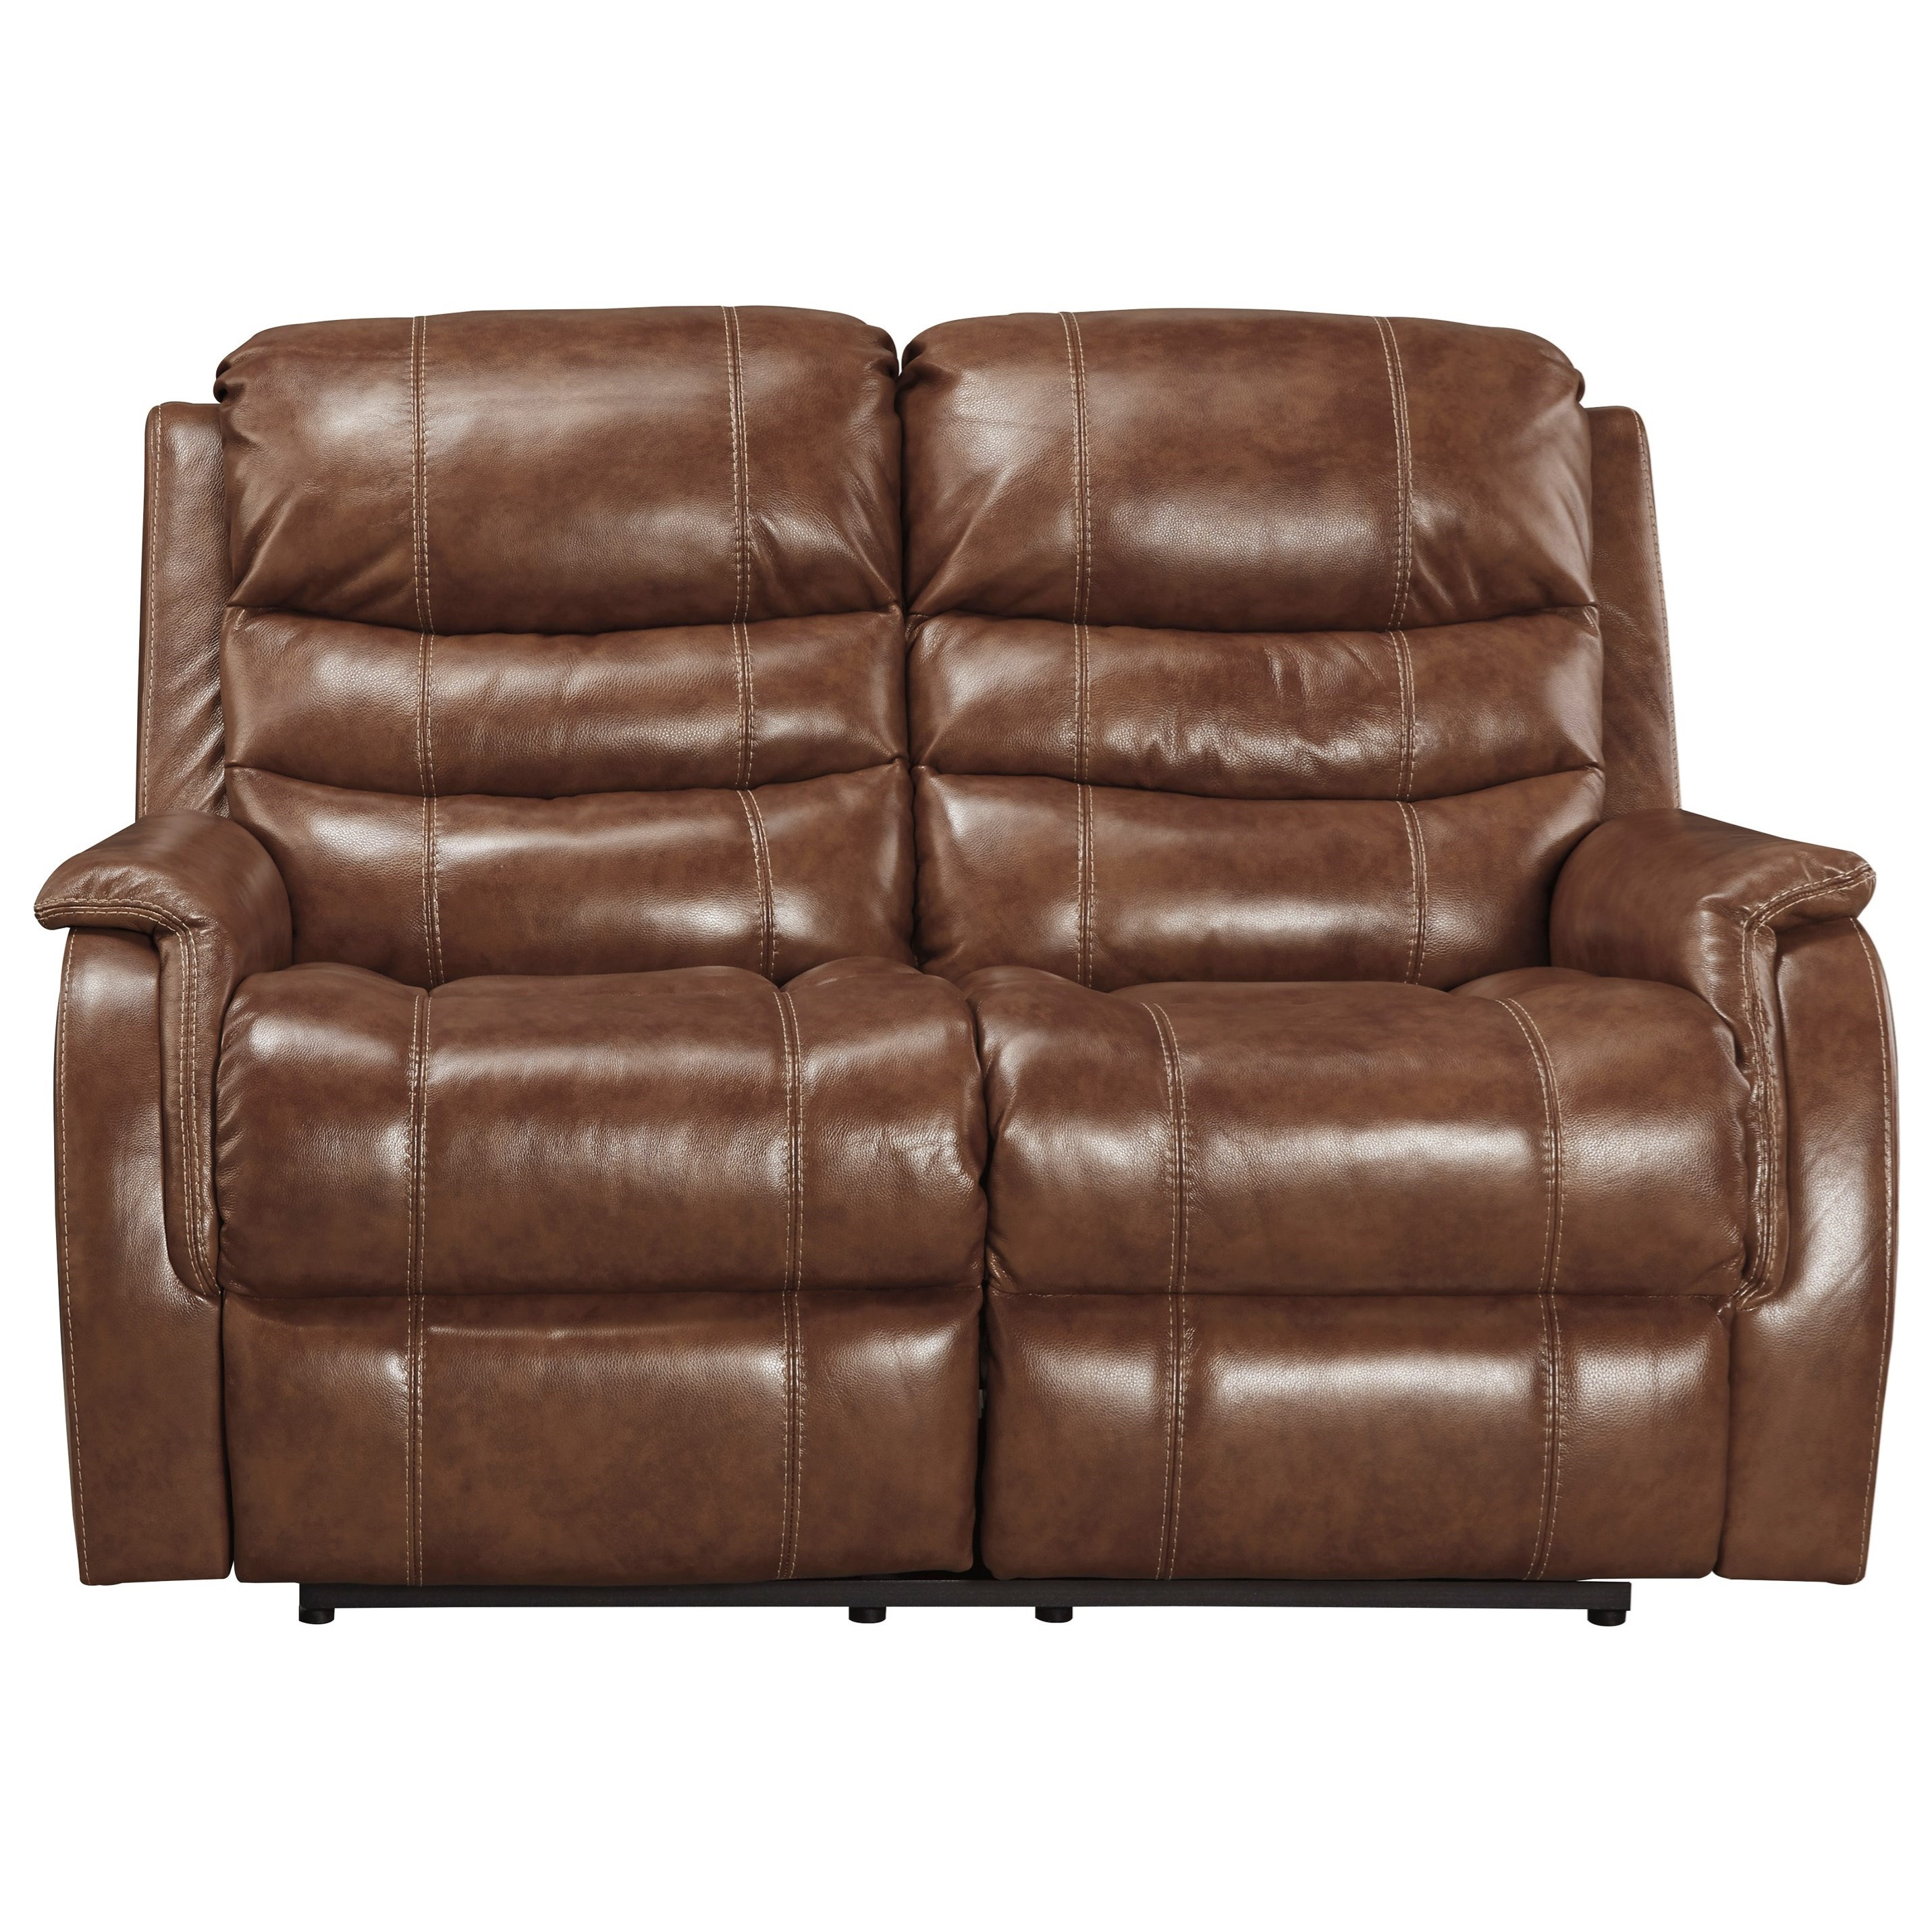 Signature Design by Ashley Metcalf Power Reclining Loveseat w/ Adj. Headrest - Item Number: 5090314